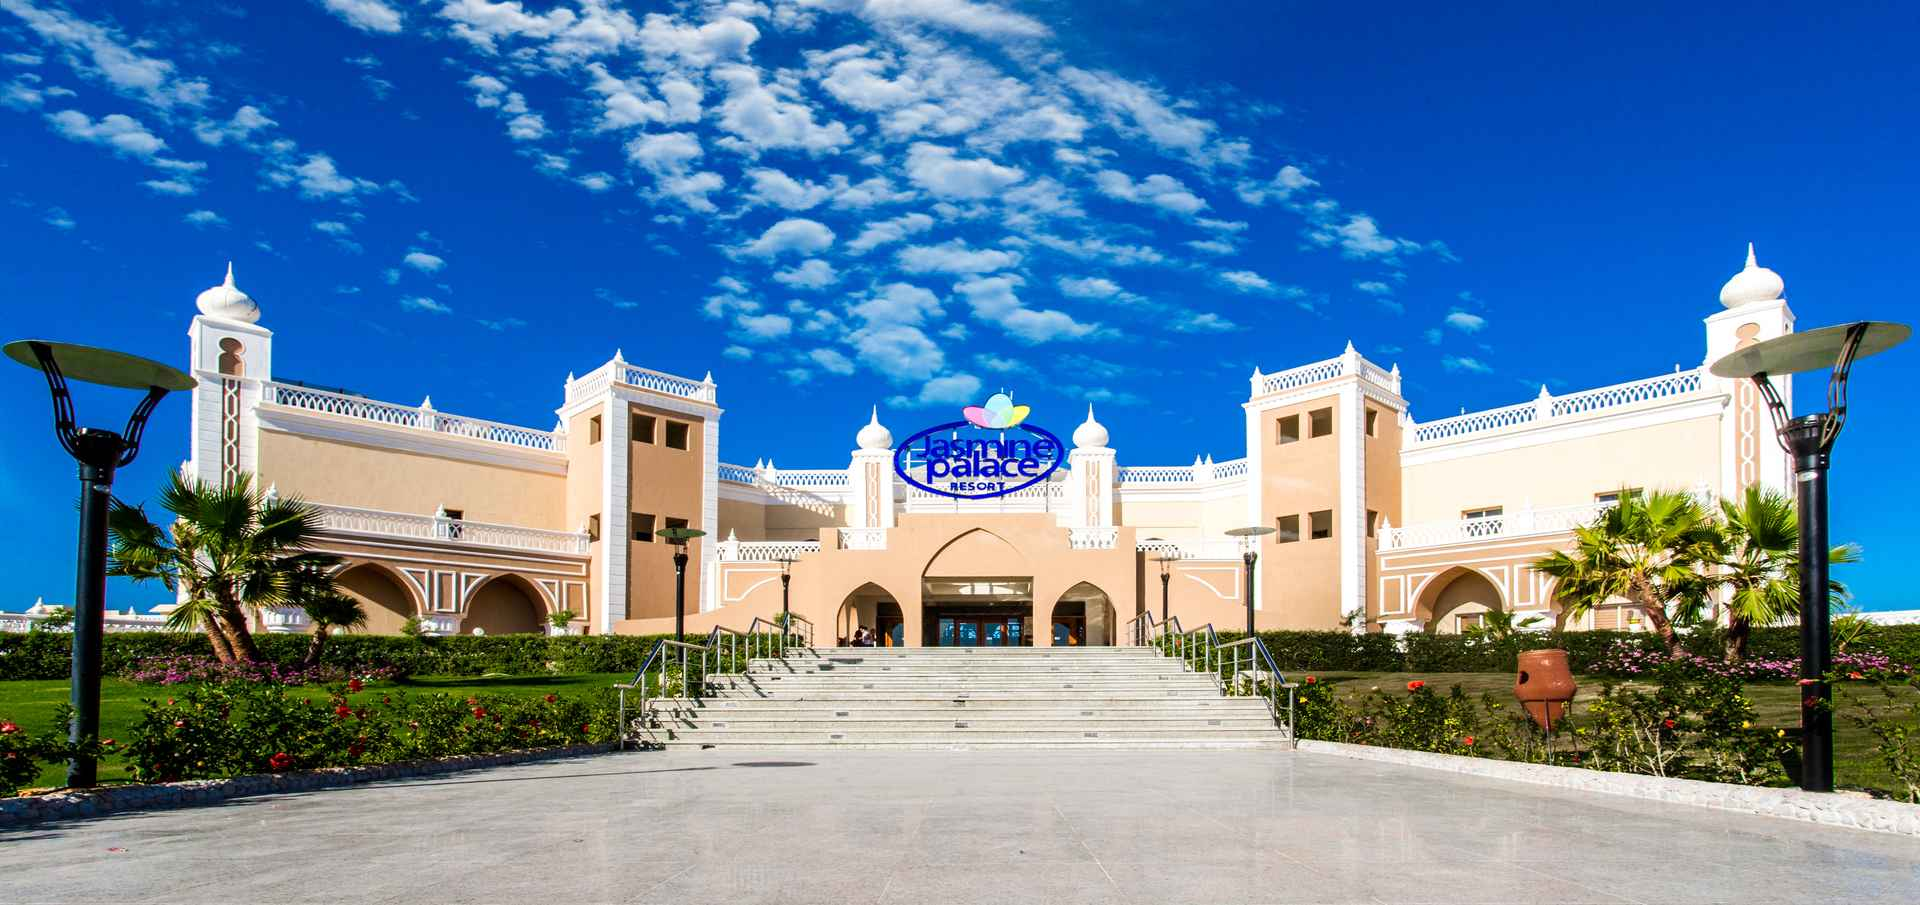 JASMINE PALACE RESORT&SPA